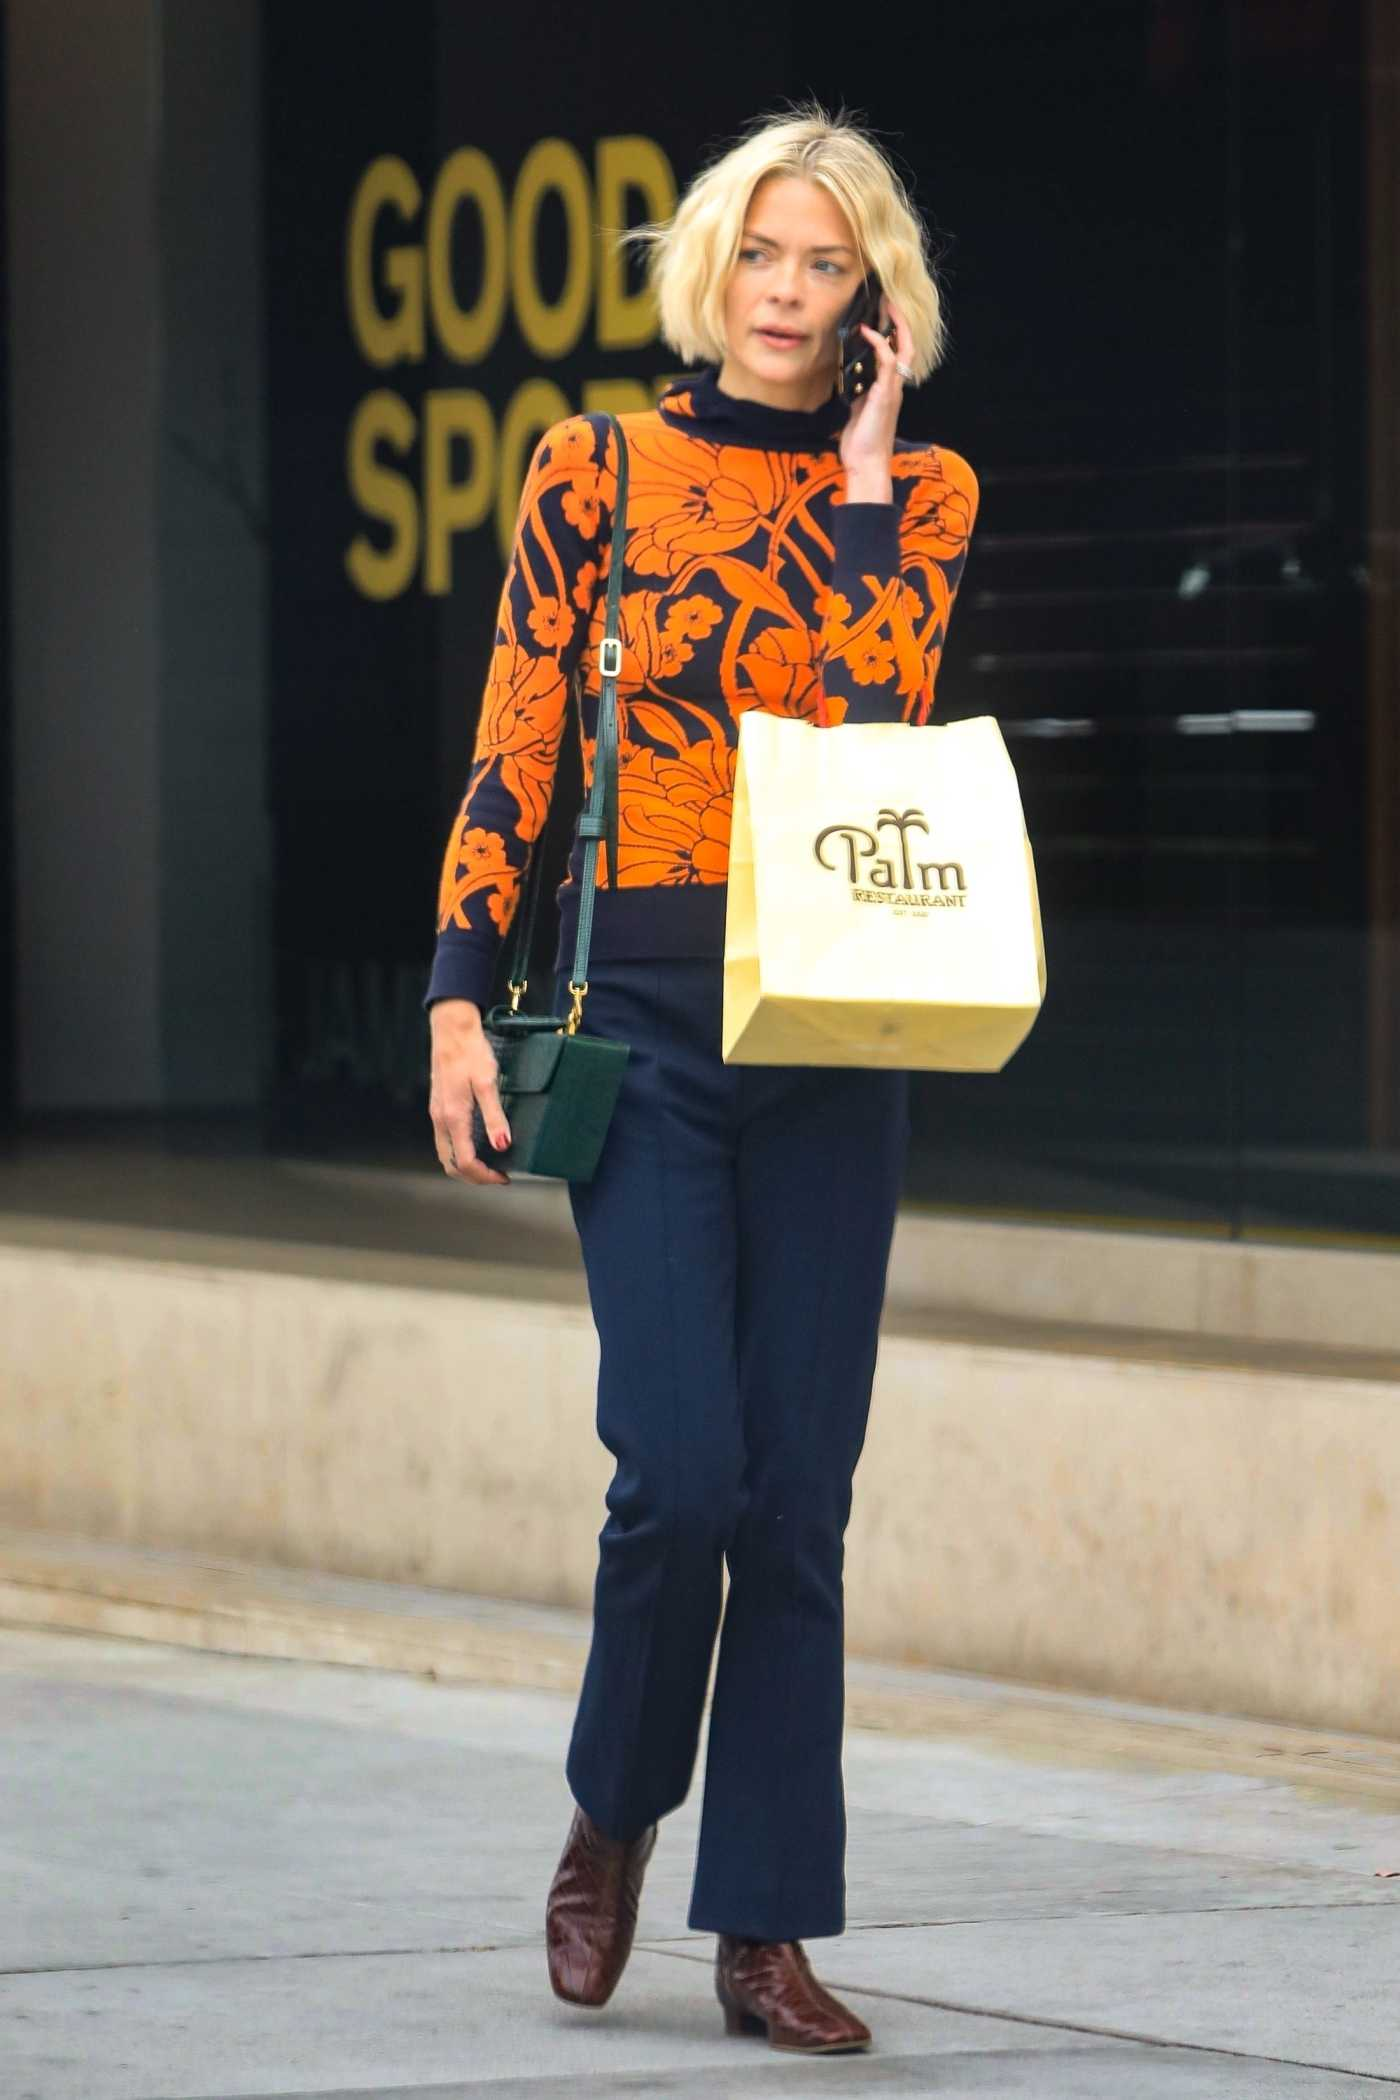 Jaime King in an Orange Sweater Leaves the Palm Restaurant in Beverly Hills 05/08/2019